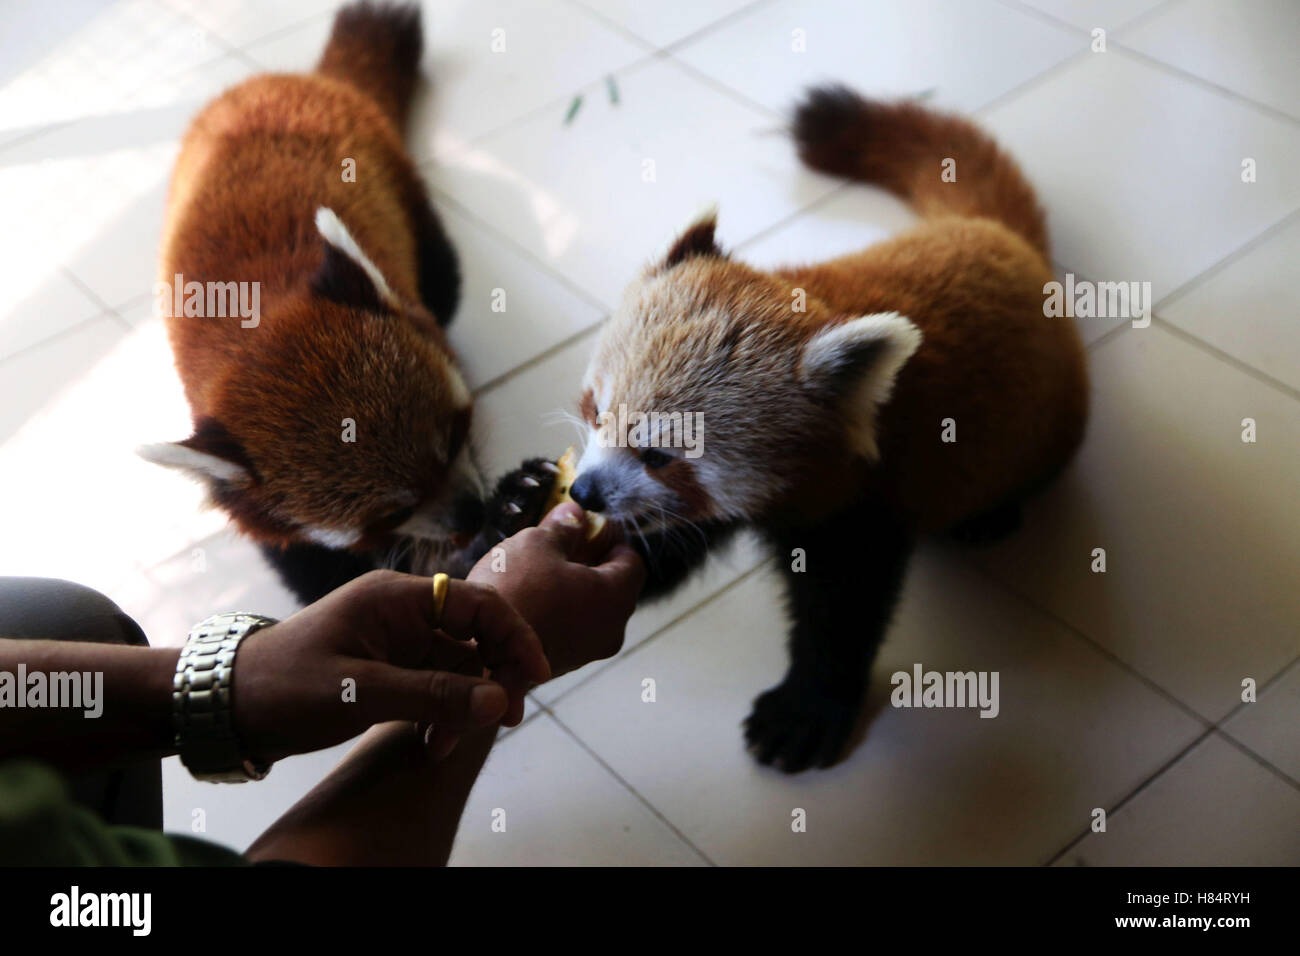 (161109) -- LALITPUR (NEPAL), Nov. 9, 2016 (Xinhua) -- Two red pandas are fed at the Central Zoo in Lalitpur, Nepal, Stock Photo